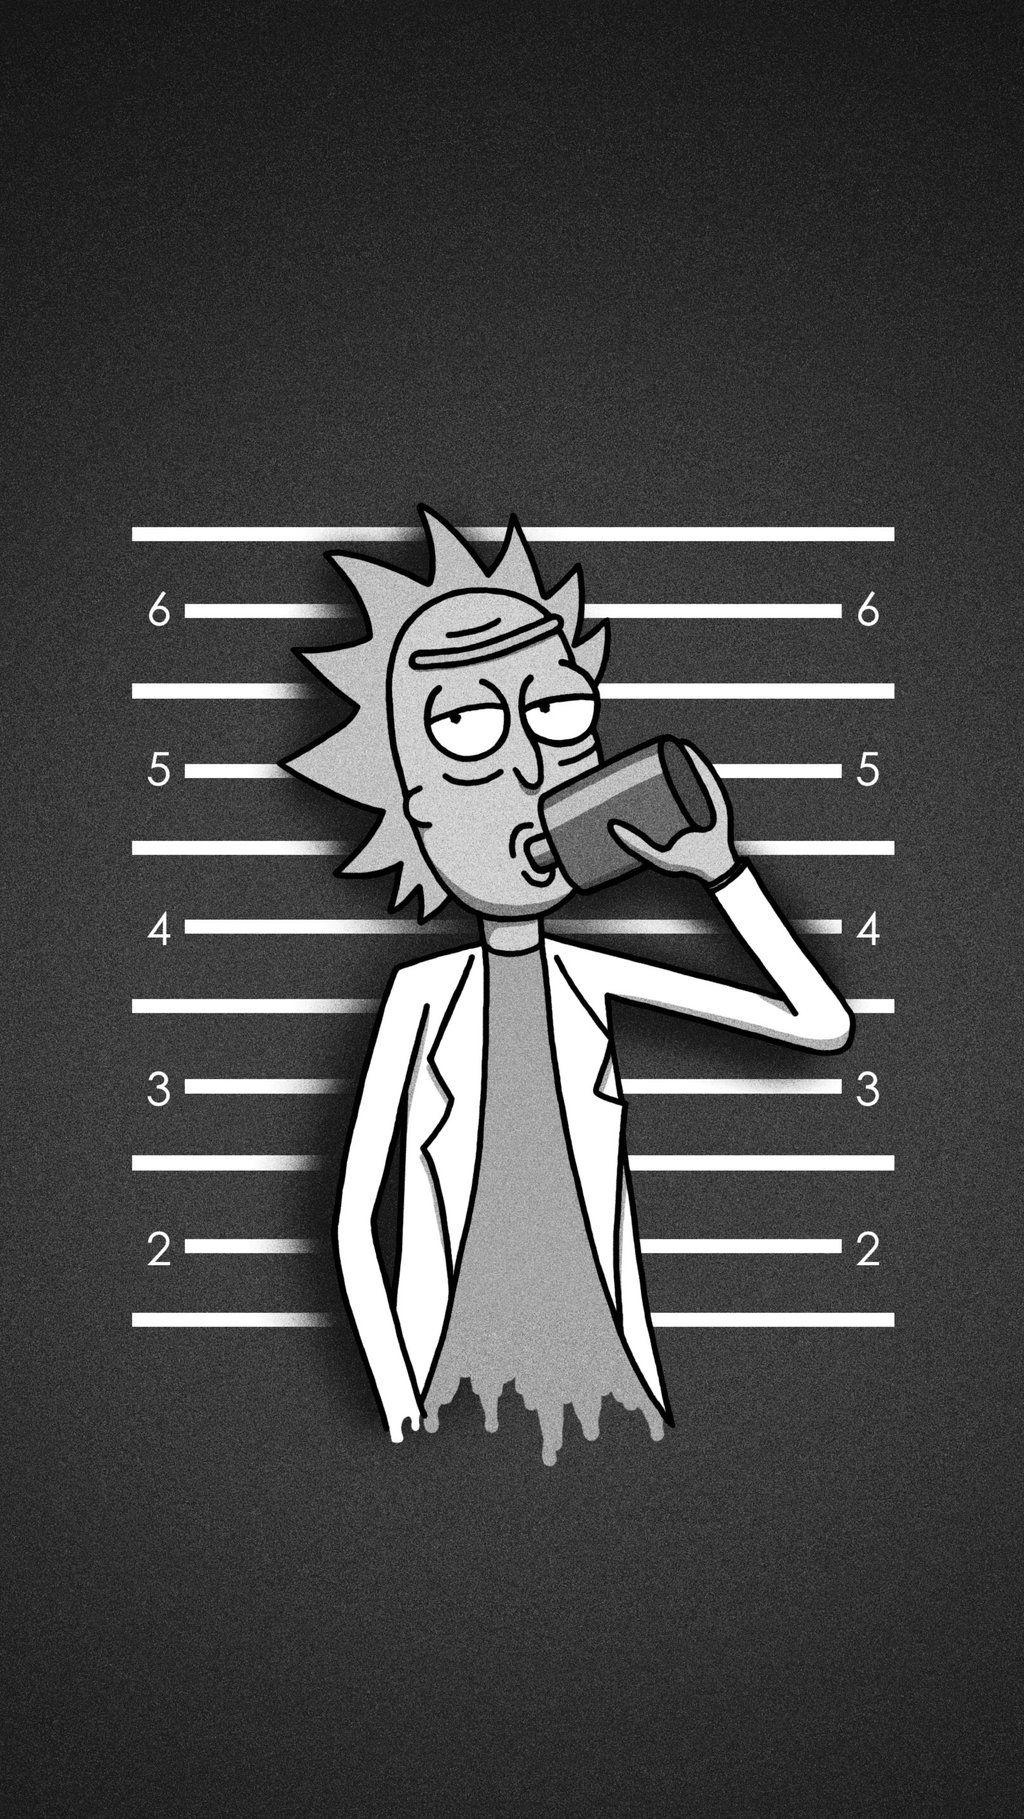 Rick and Morty Phone Wallpaper Dump – Album on Imgur